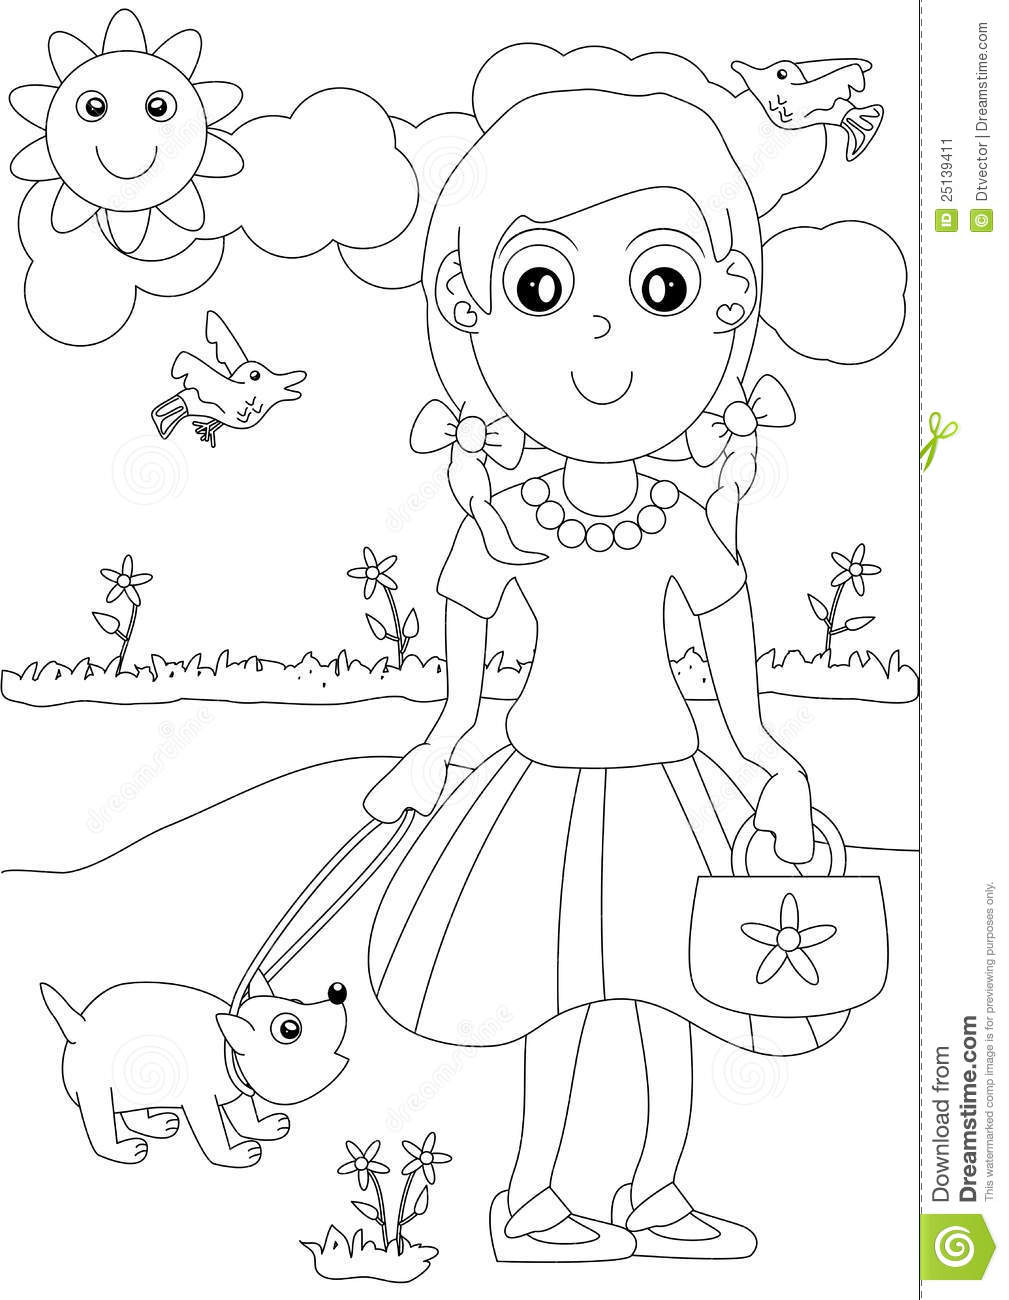 outdoor coloring pages - photo#23